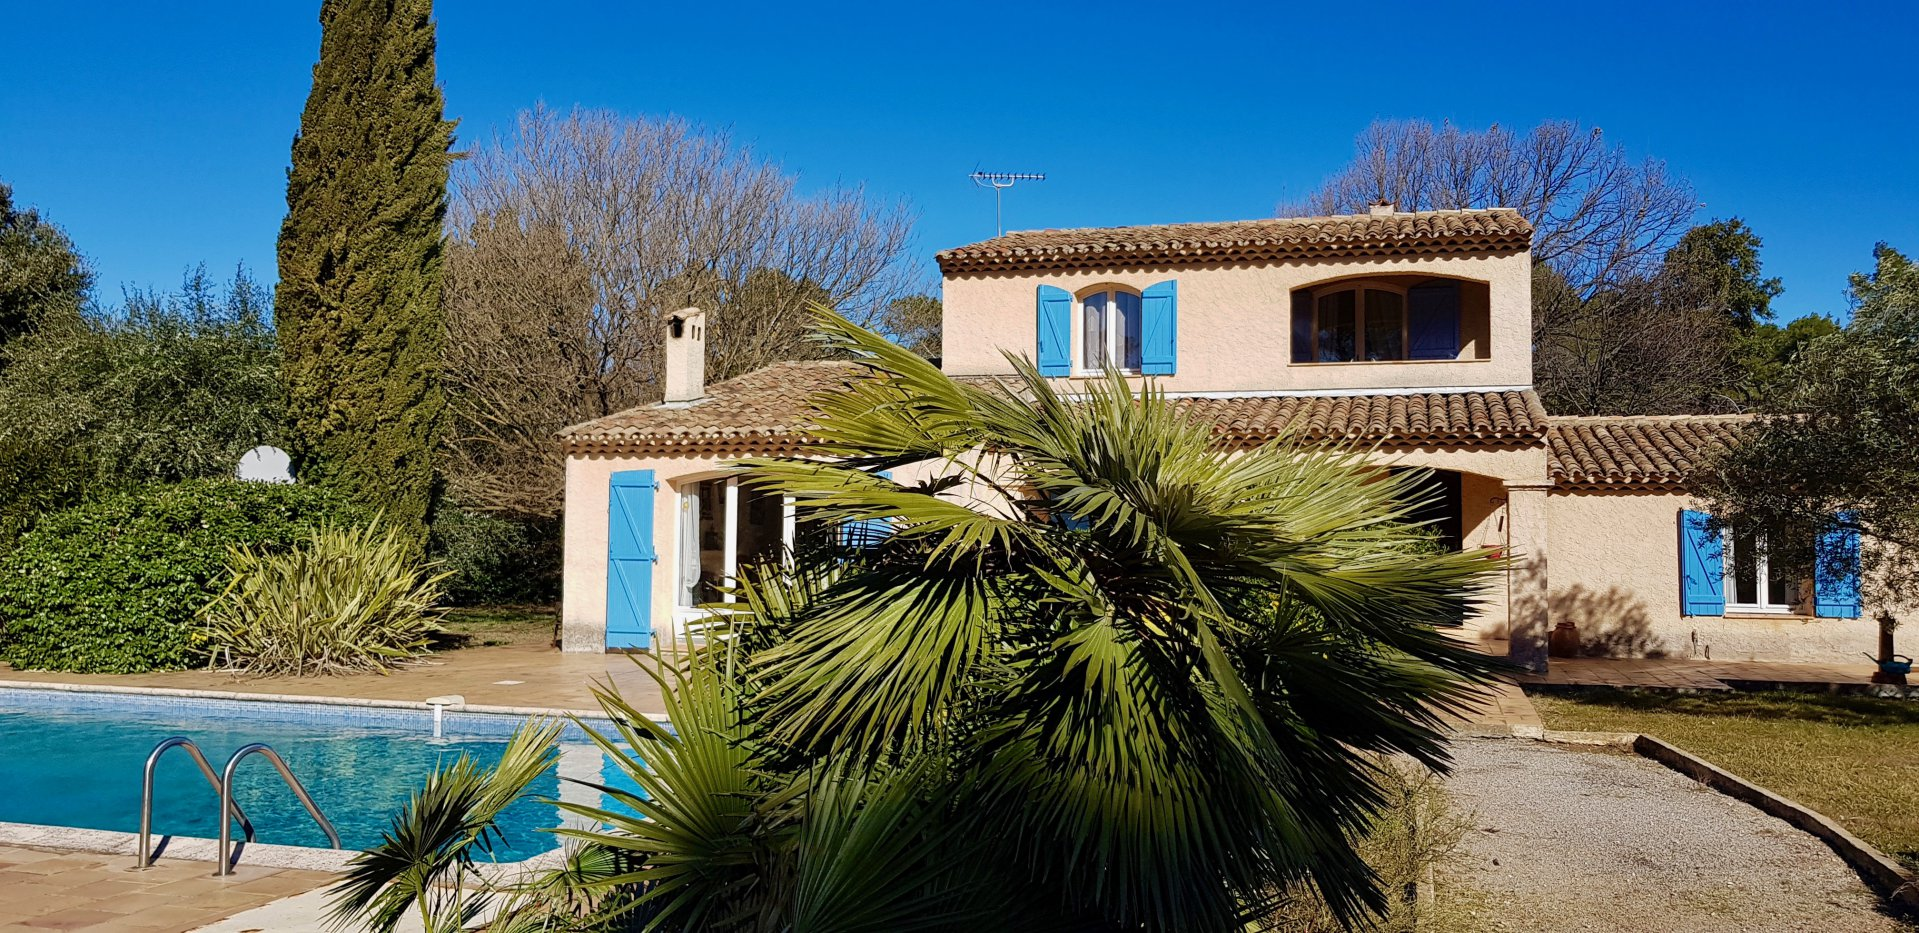 Provençale villa situated in a quiet area of Lorgues